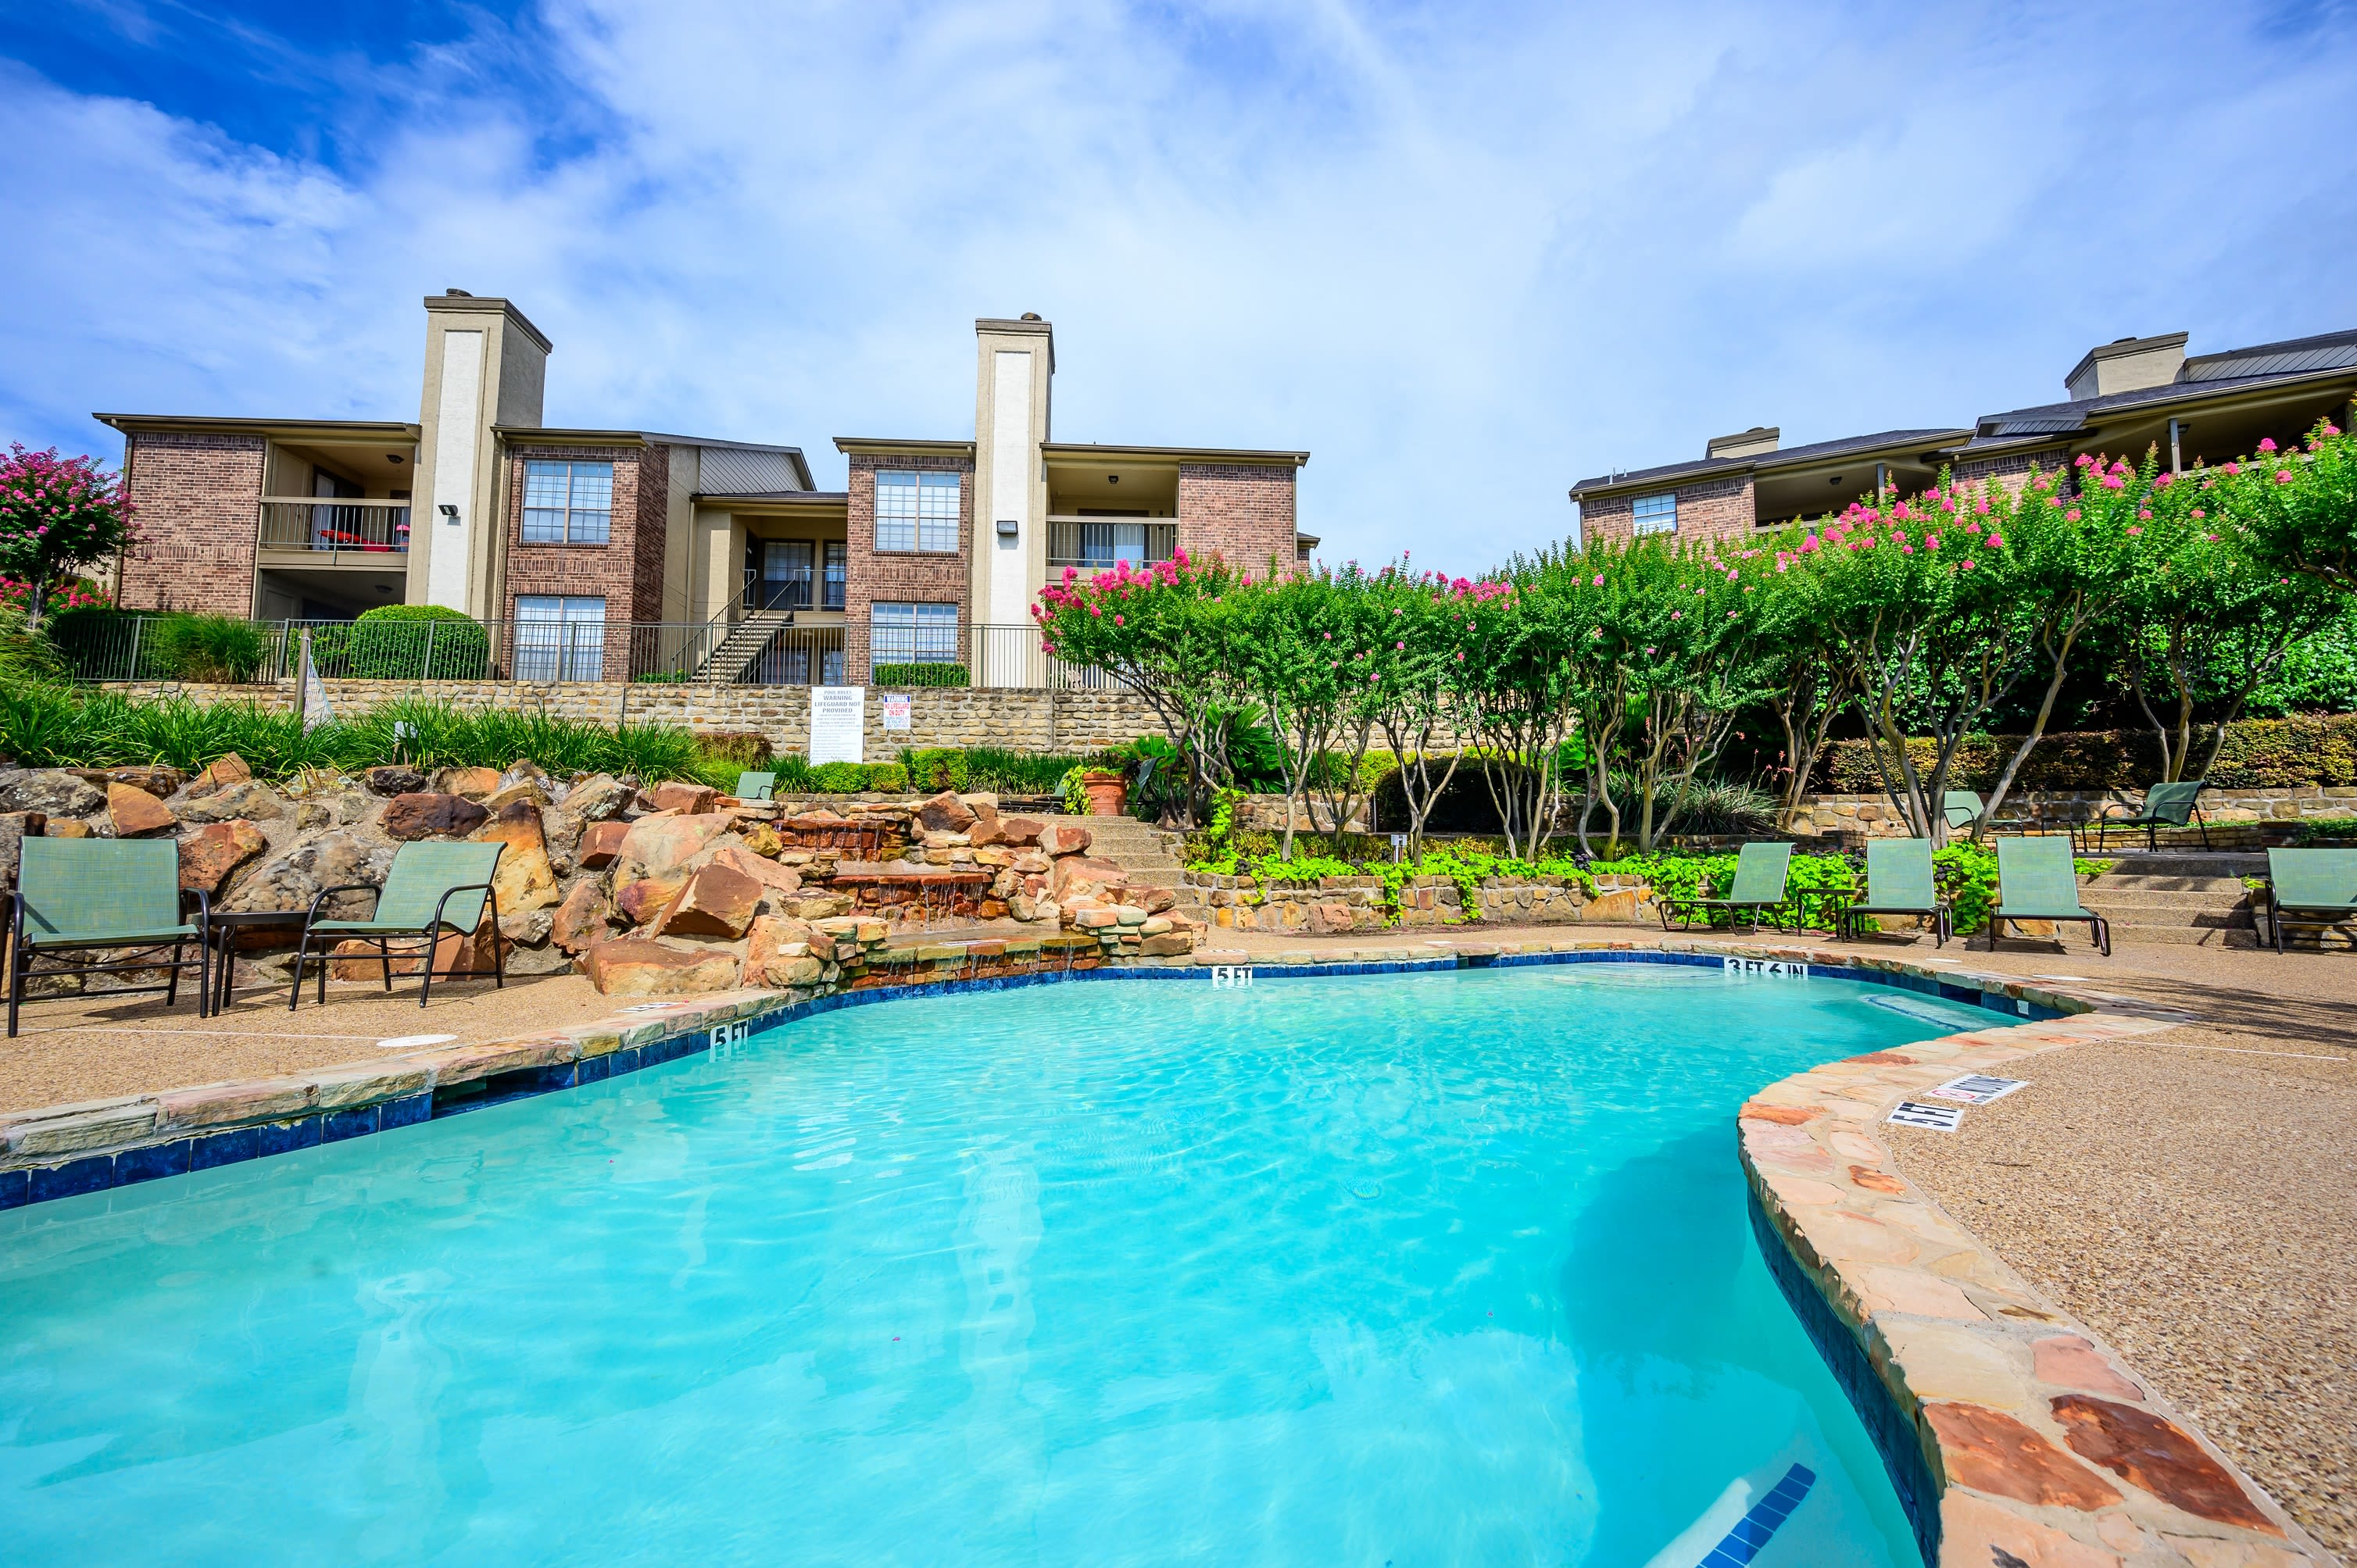 Resort-style swimming pool with waterfall at Laurel Heights at Cityview in Fort Worth, Texas